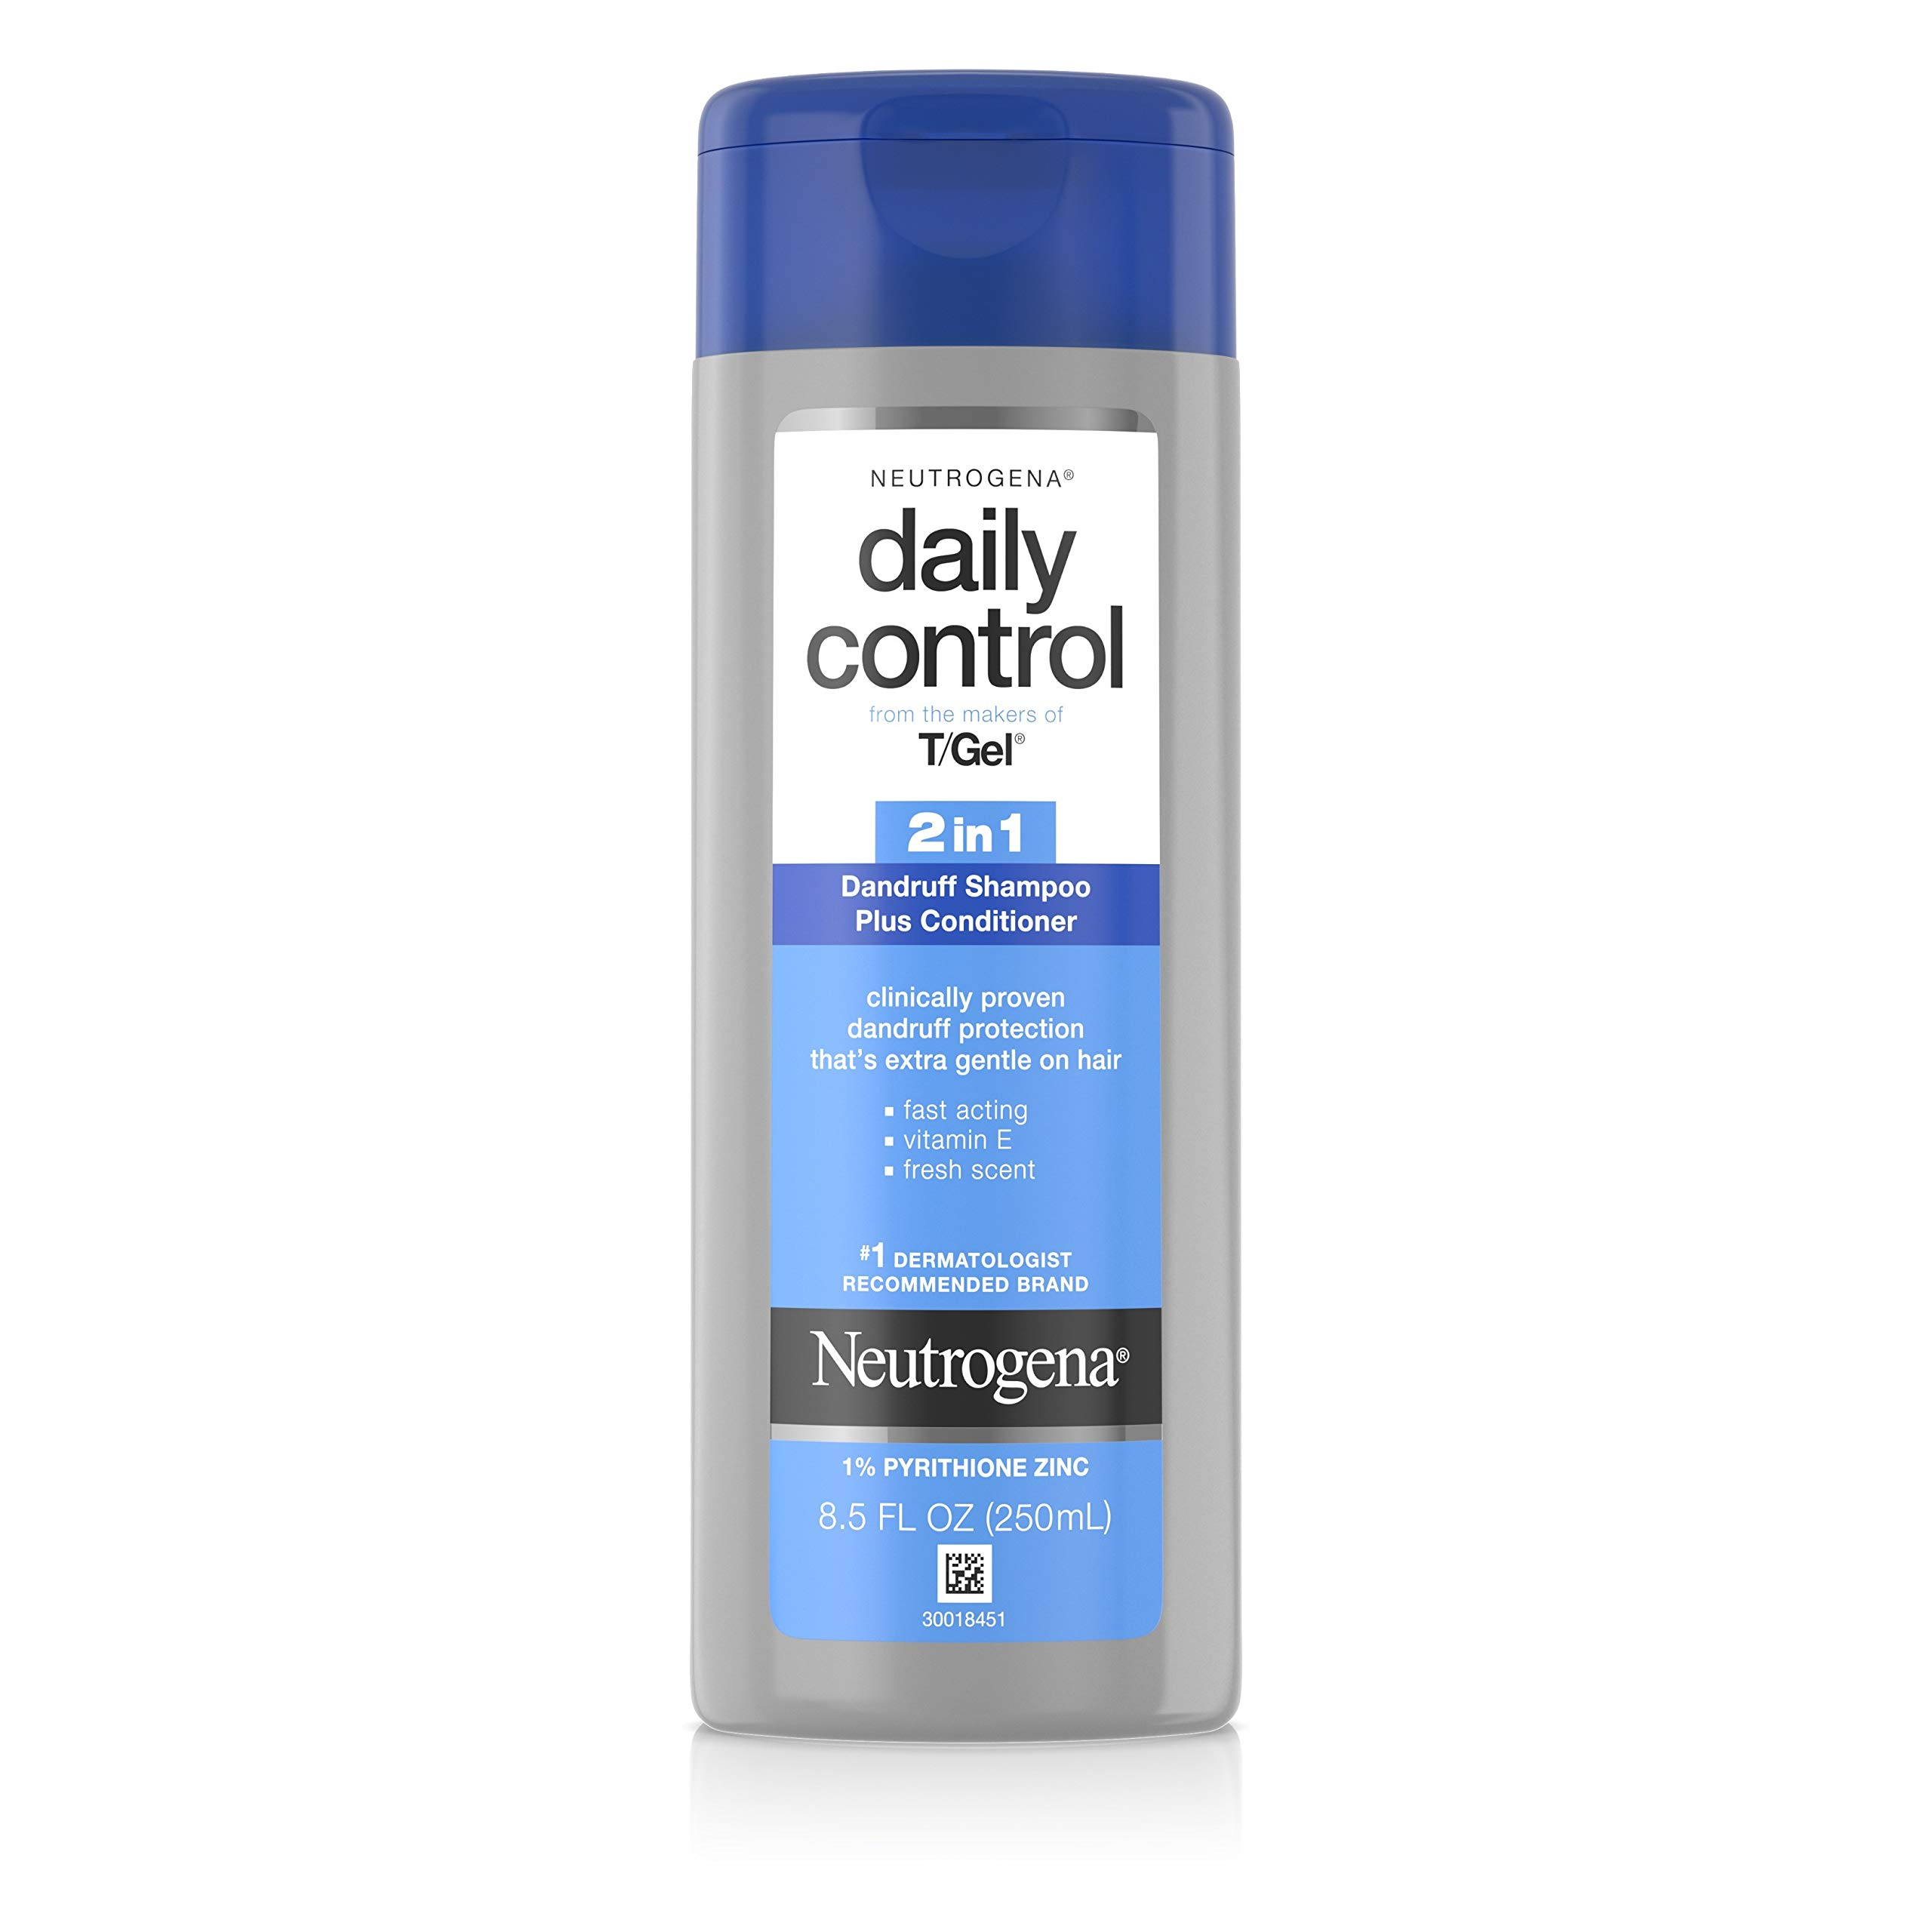 Neutrogena T/Gel Daily Control 2-in-1 Anti-Dandruff Shampoo Plus Conditioner with Vitamin E and Pyrithione Zinc, Fast Acting Relief for Scalp Itching and Flaking, 8.5 fl. oz by Neutrogena (Image #1)